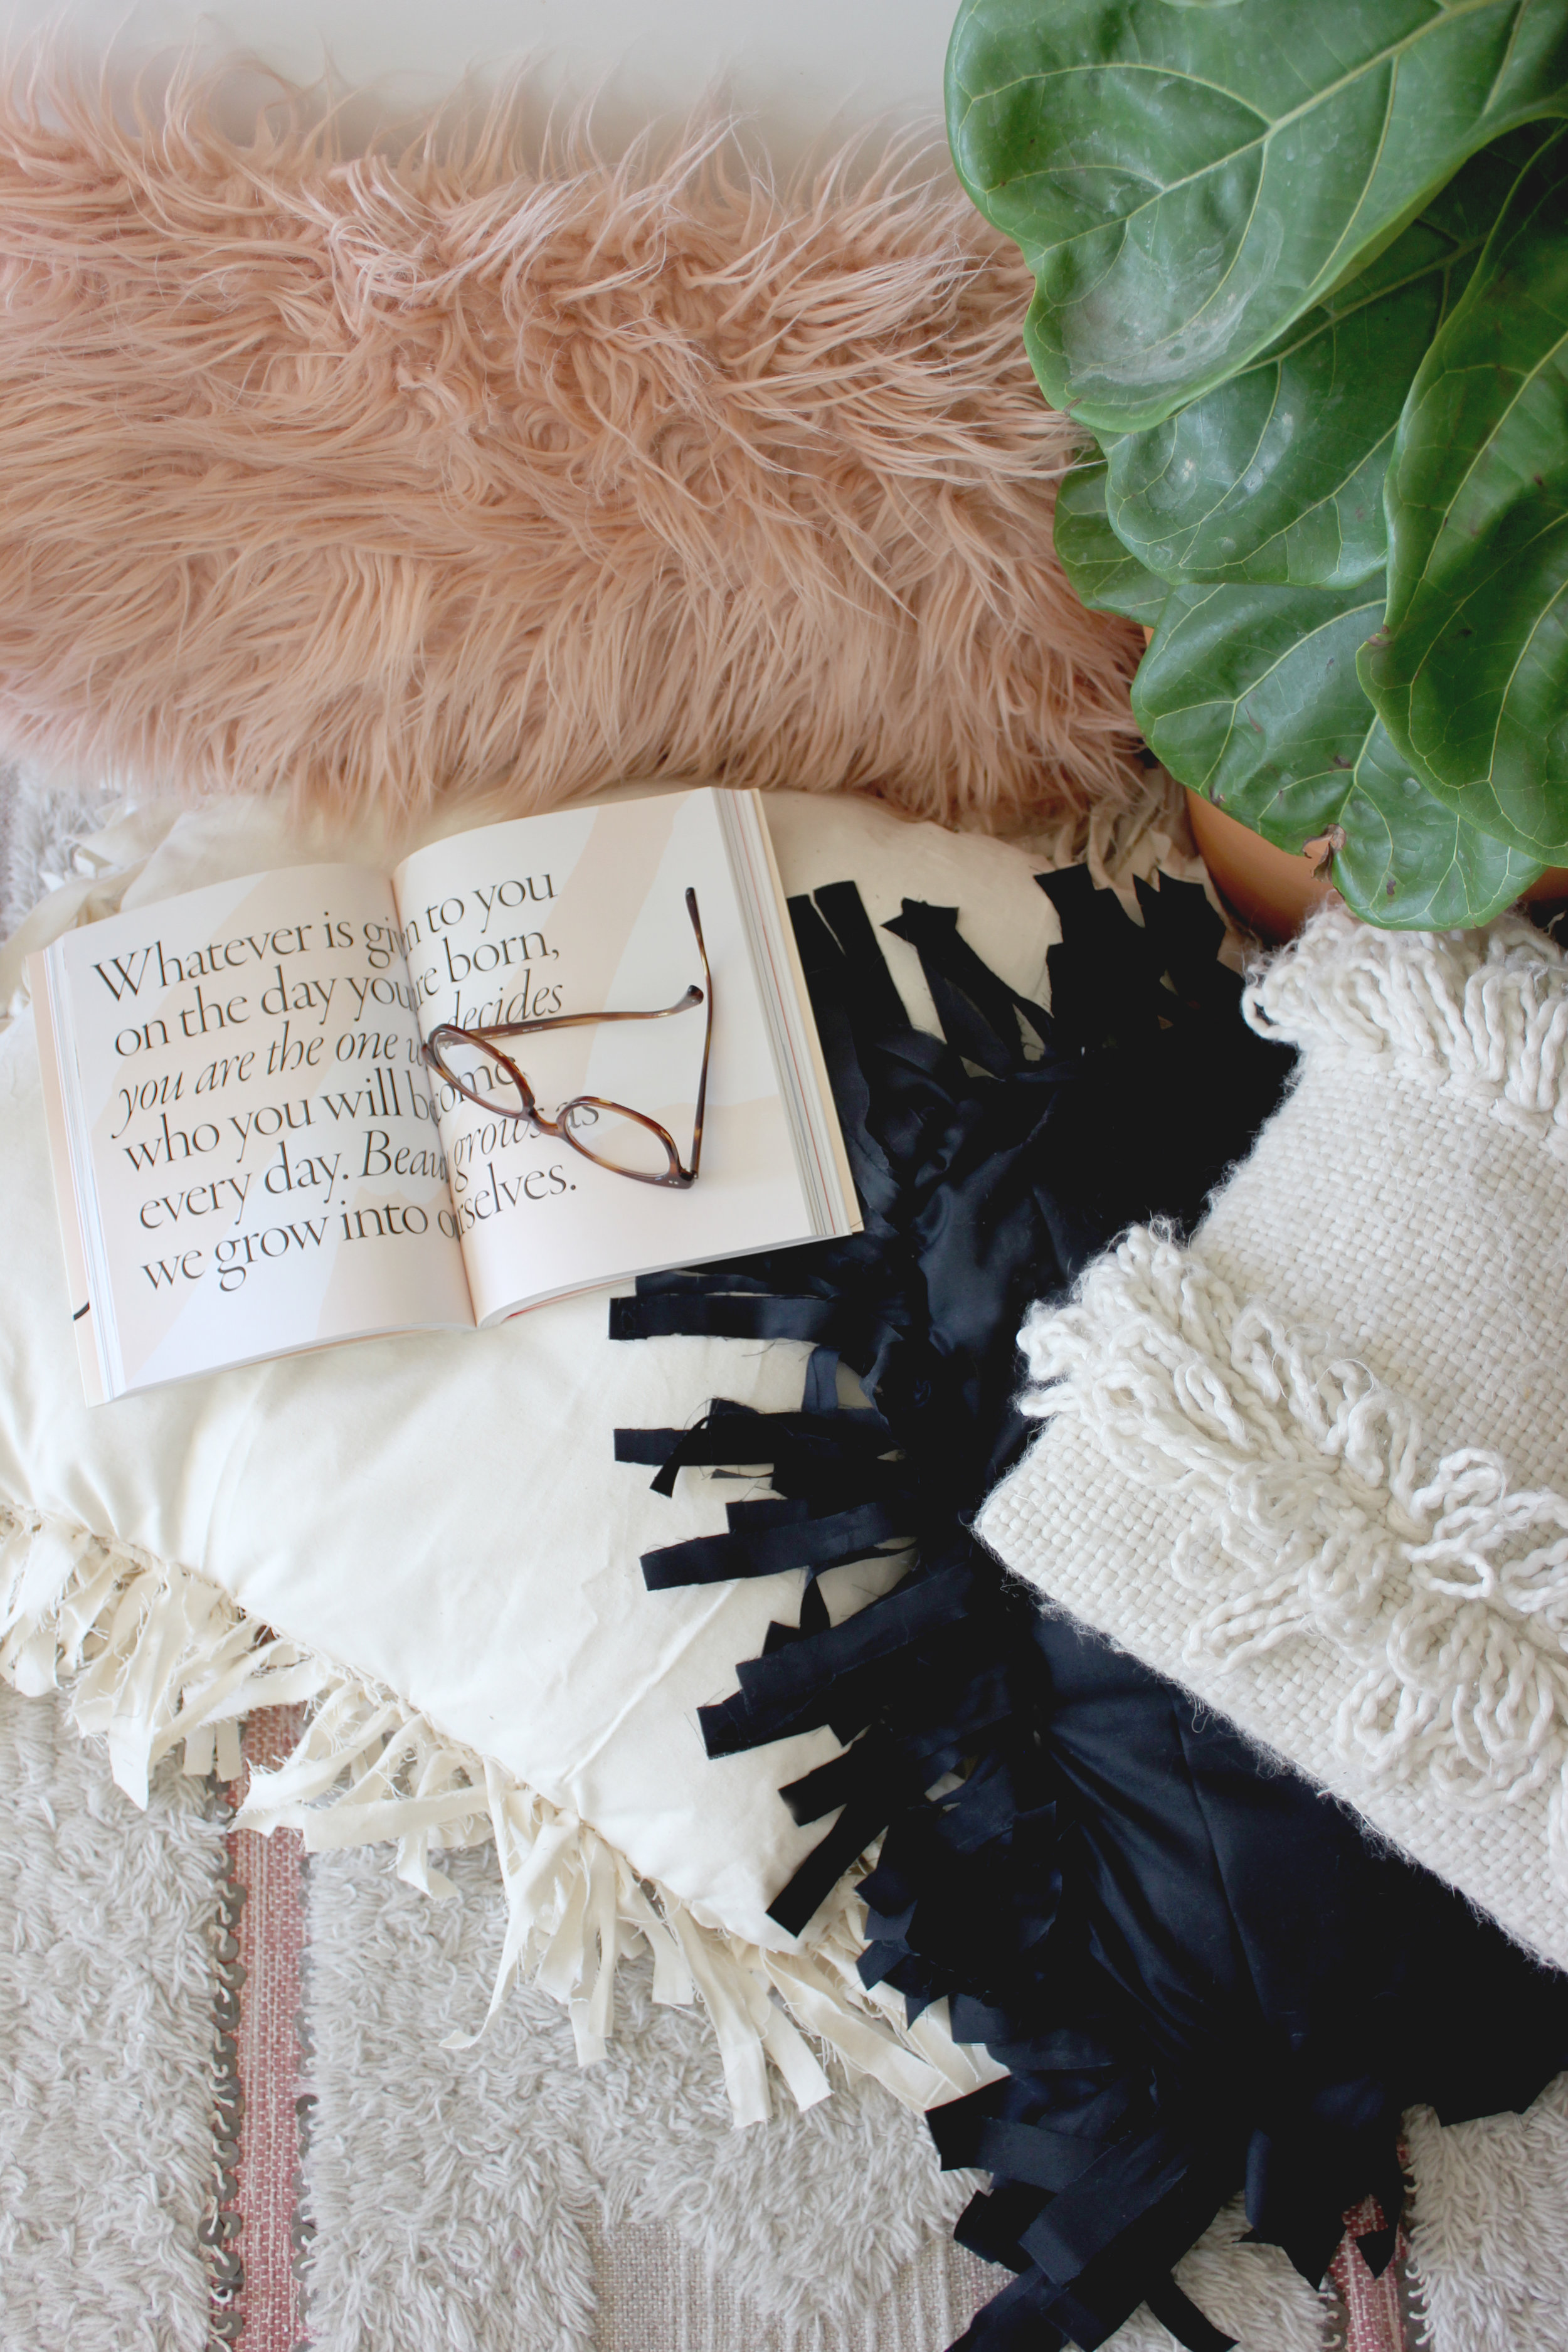 How to make floor pillows for your fall get togethers | A Fabulous Fete